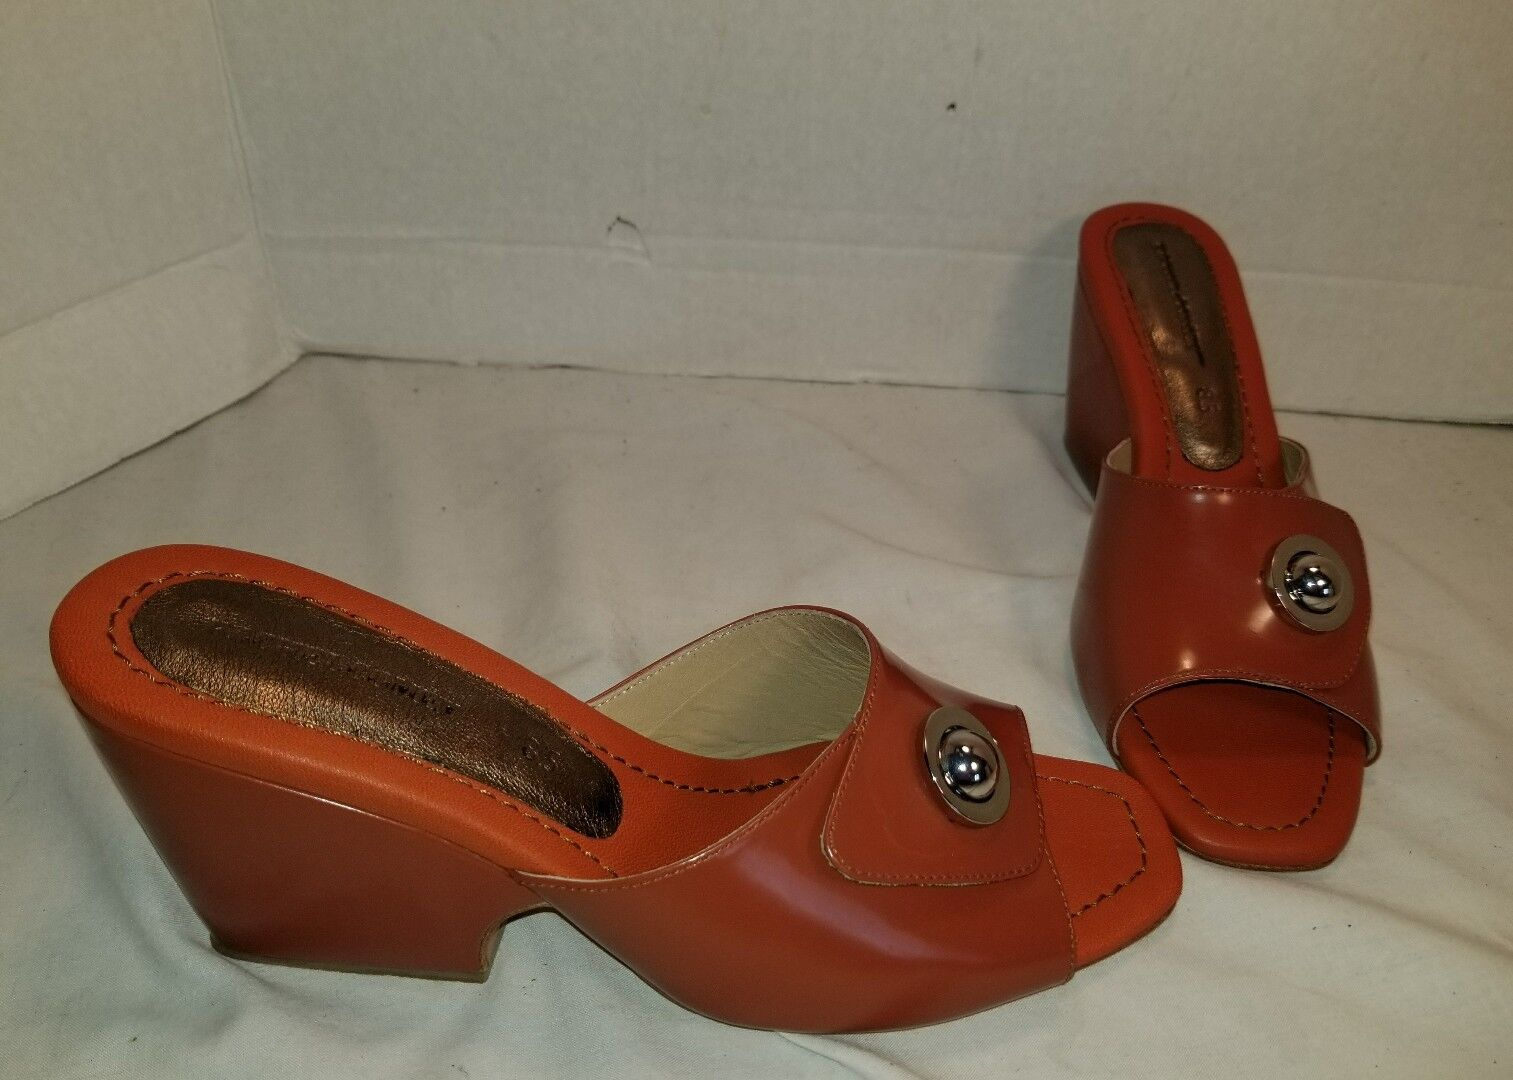 NEW ANTHROPOLOGIE RACHEL COMEY HESS PATENT LEATHER MULES WOMEN'S US 8.5